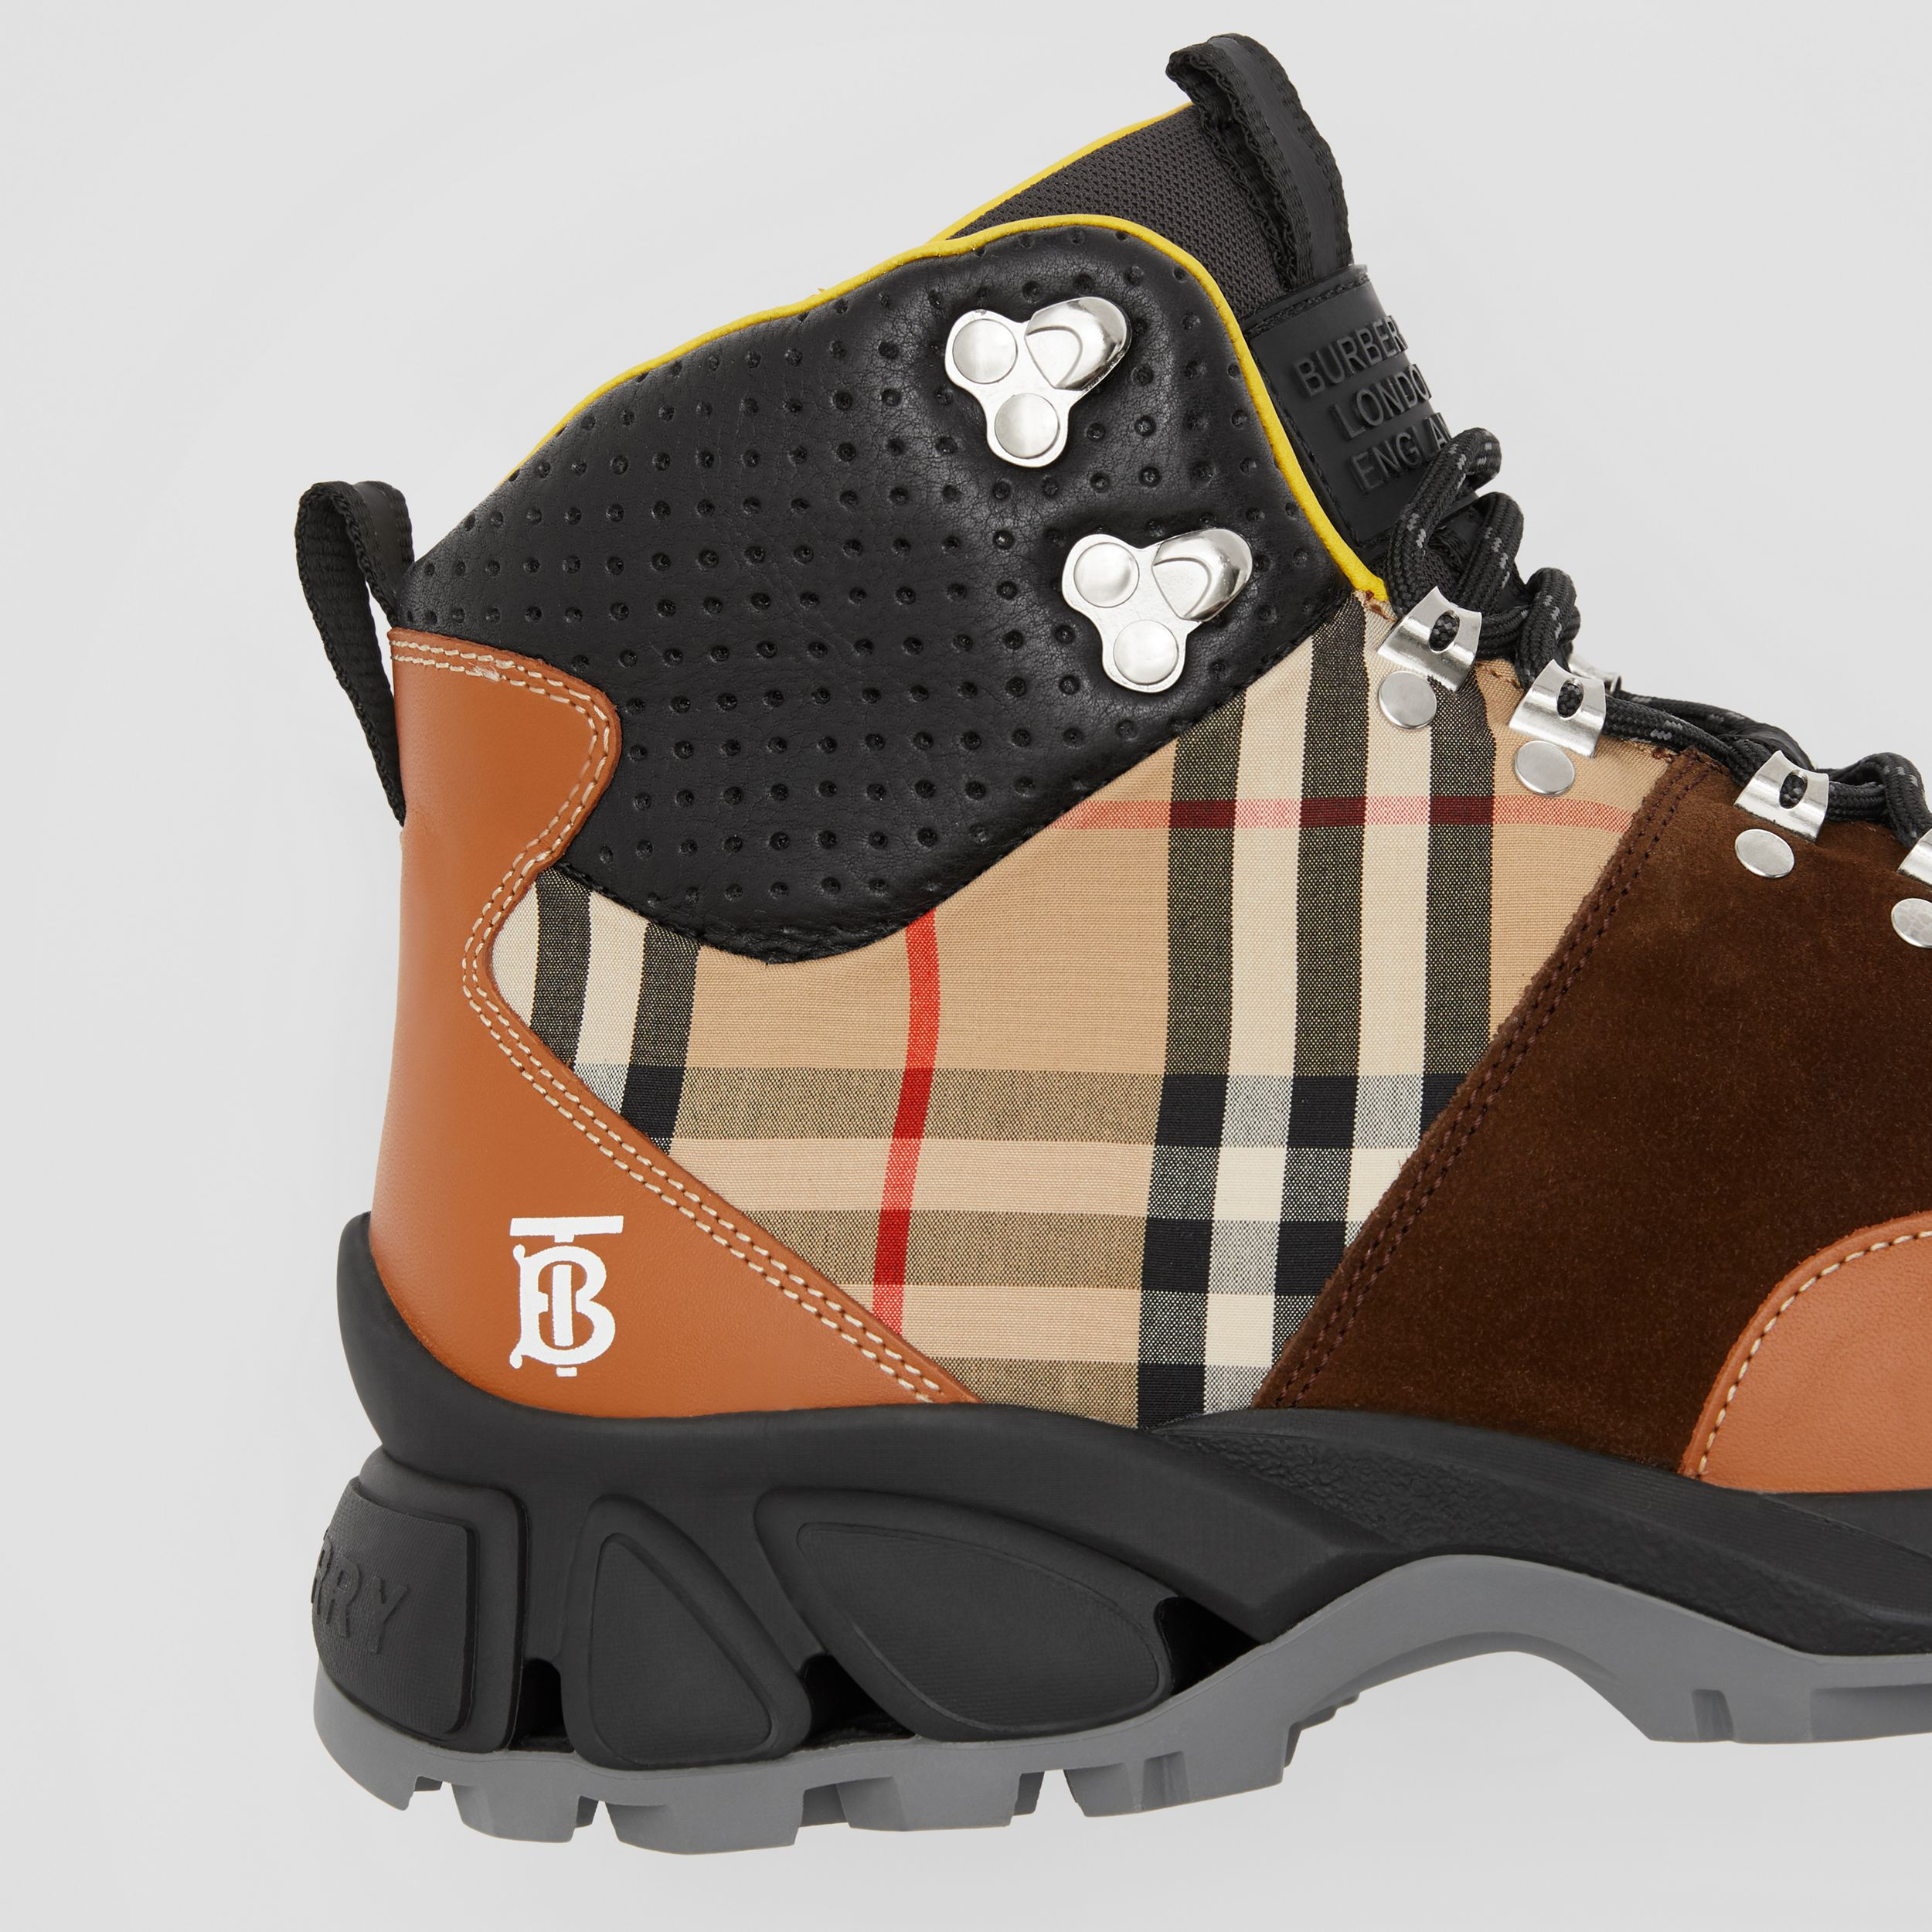 Leather, Vintage Check Cotton and Suede Tor Boots in Tan Mix - Men | Burberry - 2